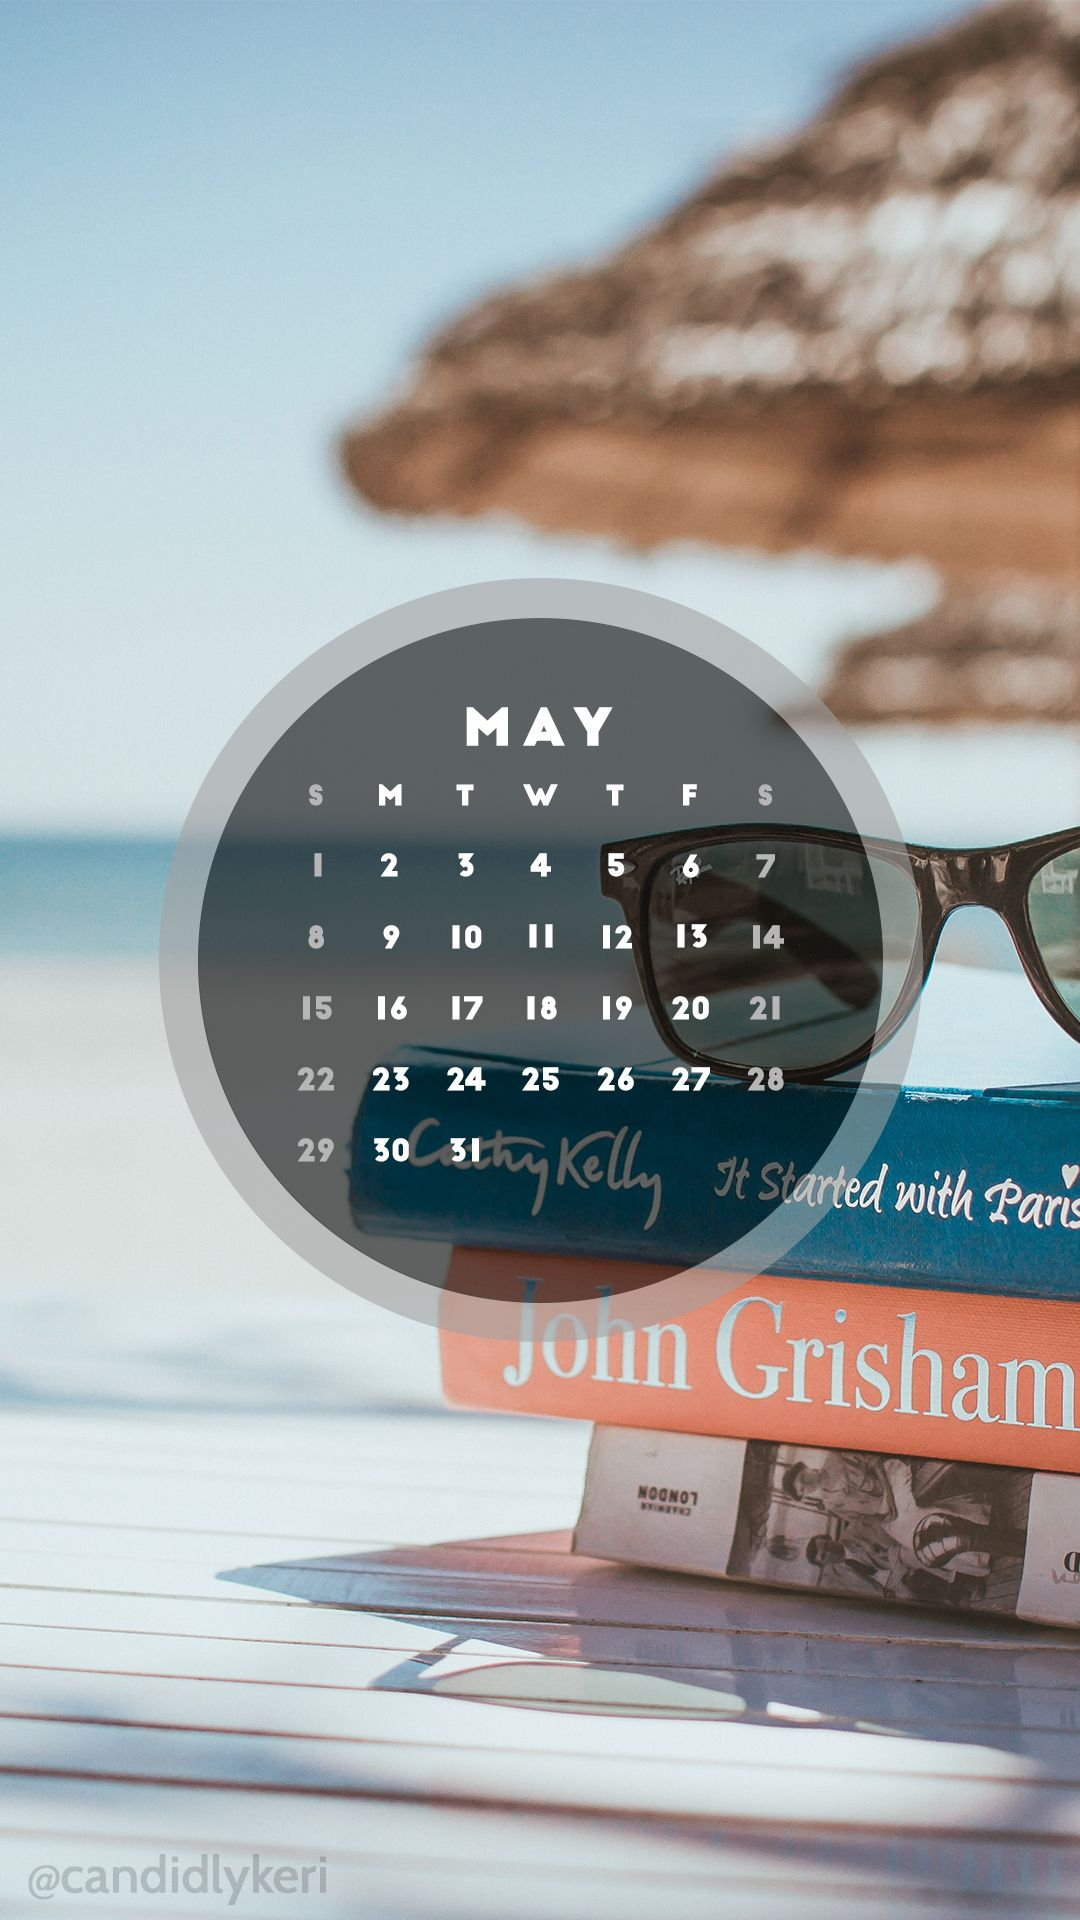 Wallpaper download blog - Summer Sunglasses Book Beach May 2016 Calendar Wallpaper Free Download For Iphone Android Or Desktop Background